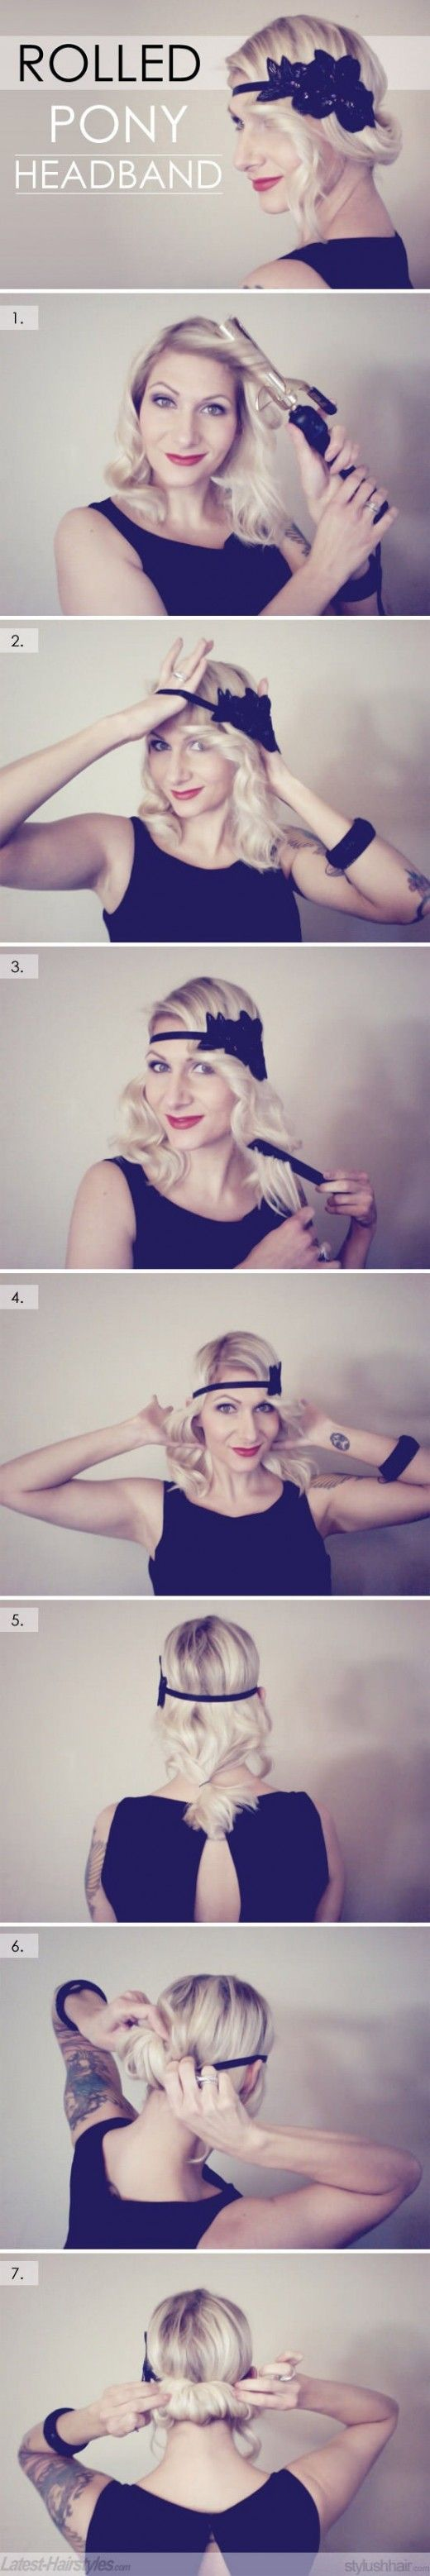 DIY Rolled Ponytail Headband Hairstyle DIY Projects Повязка на голову.